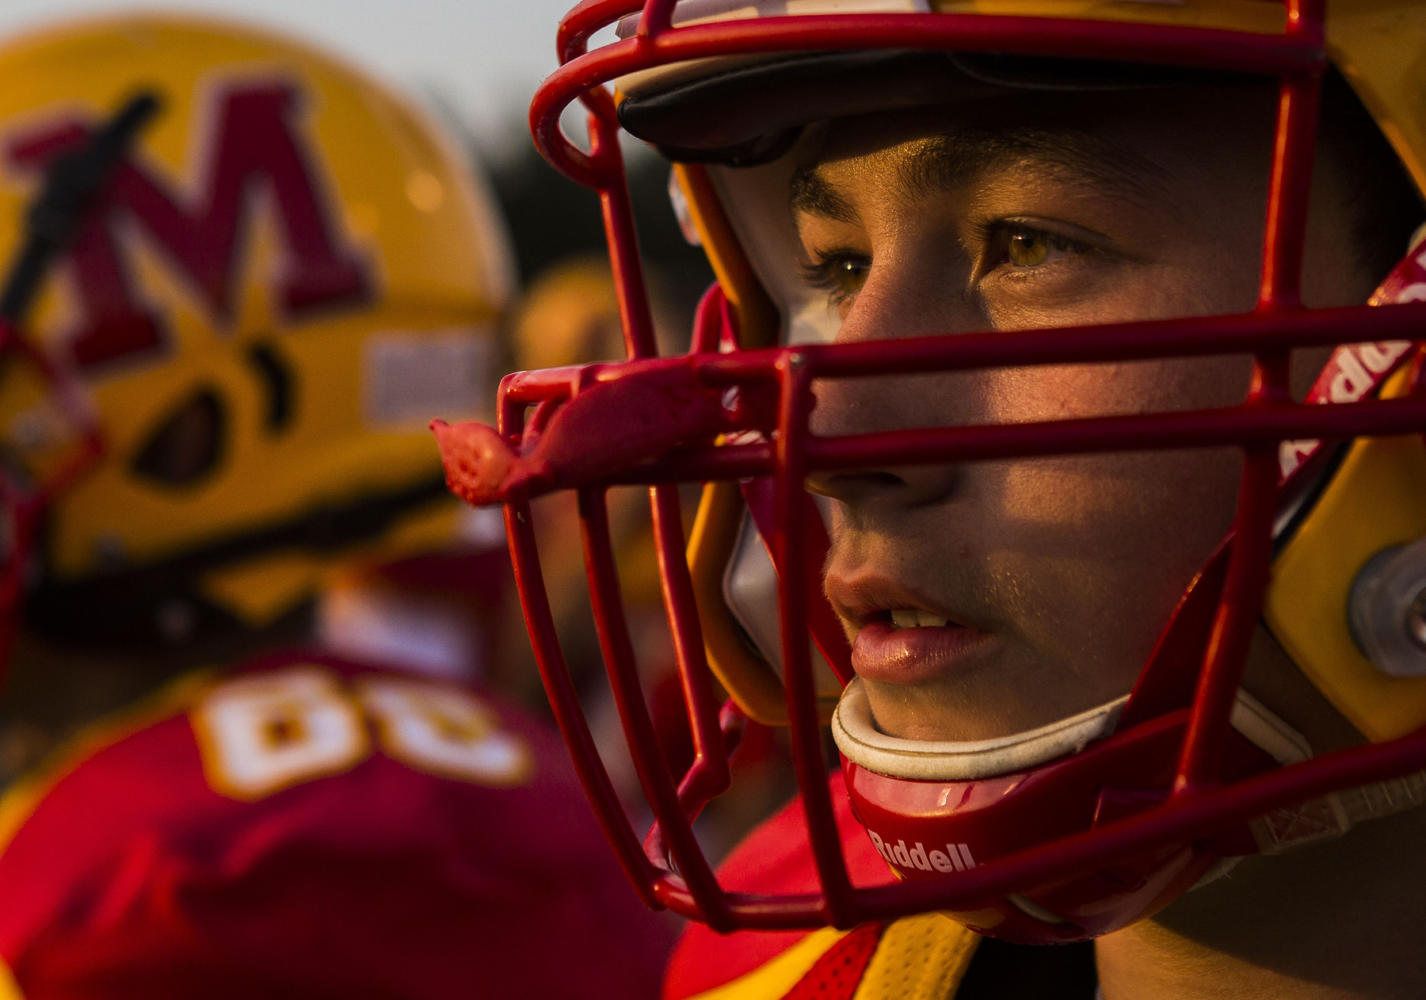 Murphysboro linebacker Michael Shearer looks onto the field during the 100th meeting between the Murphysboro Red Devils and the Carbondale Terriers on Friday, Aug. 25, 2017, at